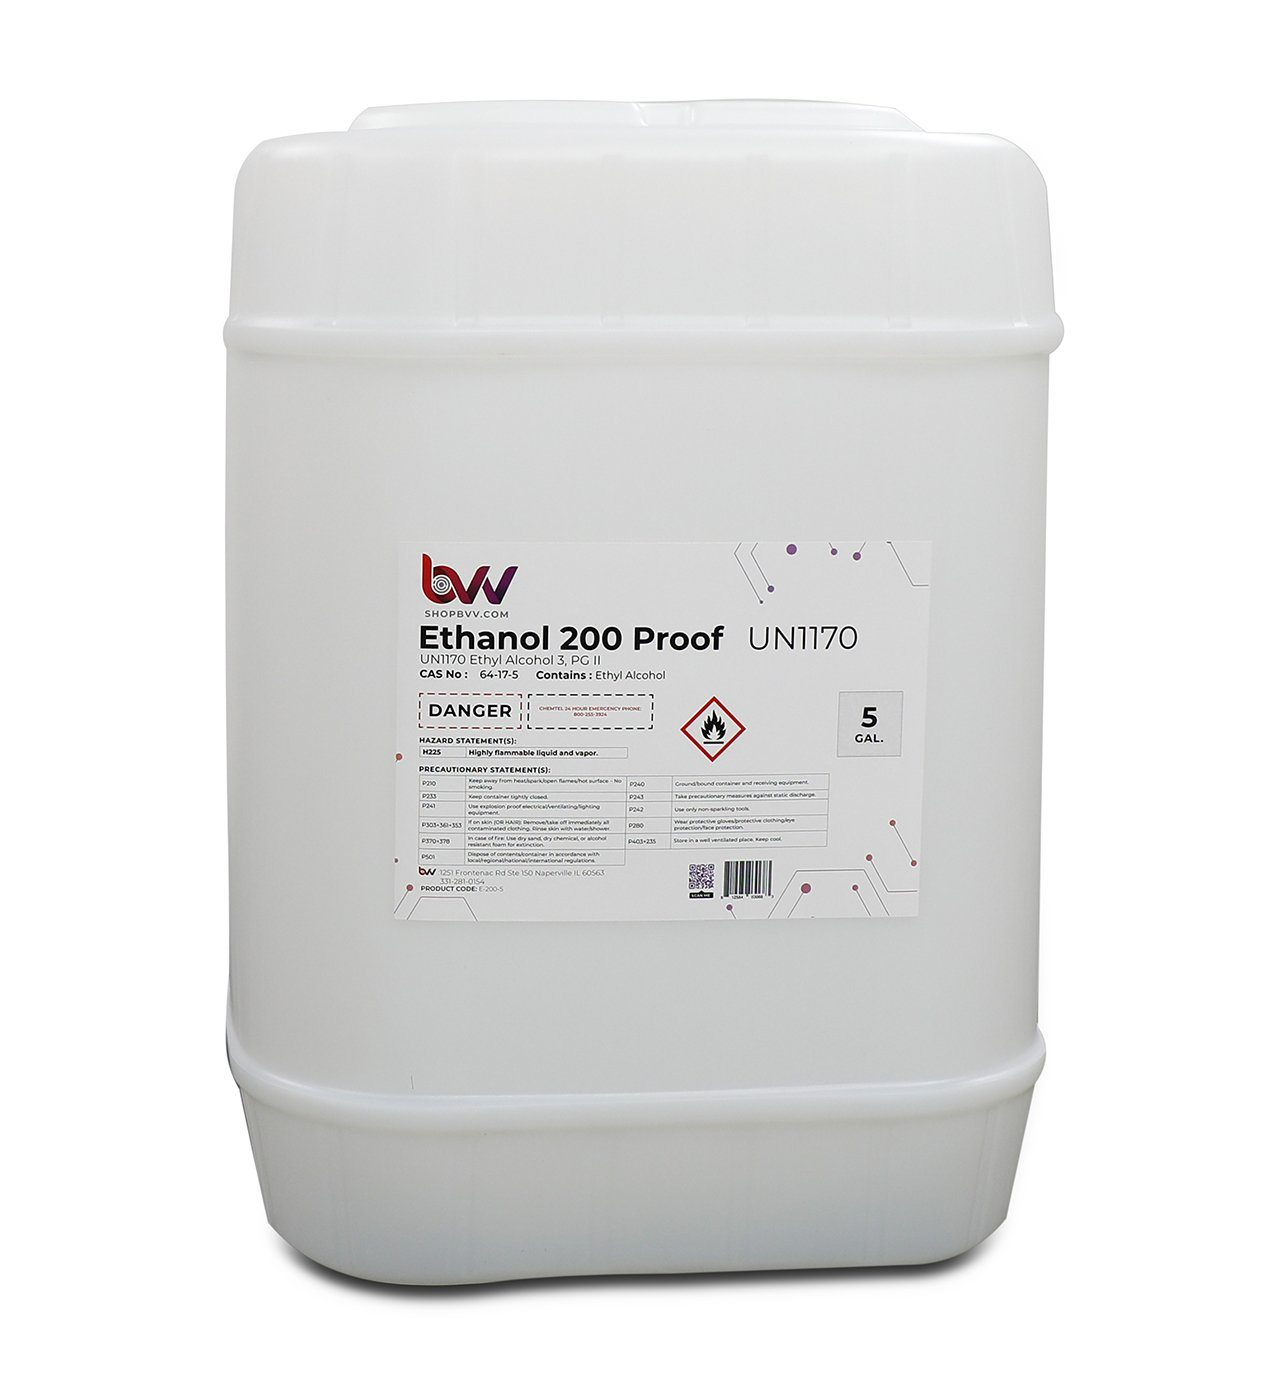 BVV™ Food & Lab Grade Ethanol 200 Proof - 99.97% - USP-NF, Kosher - Excise Tax Included Shop All Categories BVV